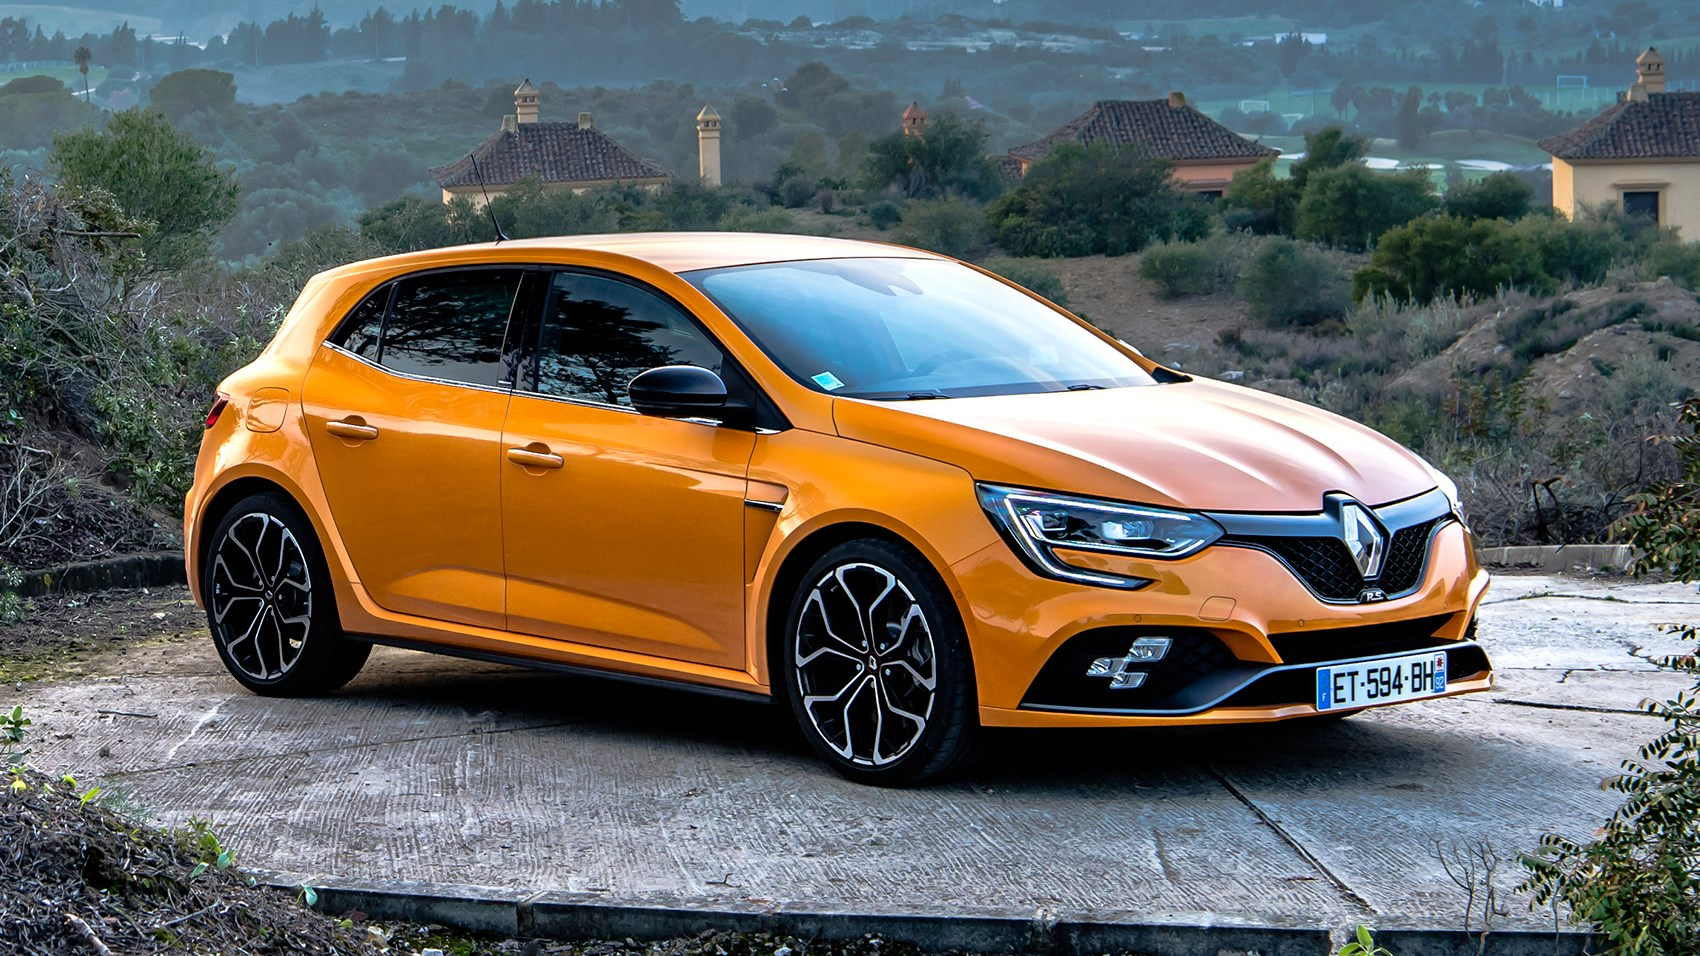 renault megane r s 2018 review return of the king by car magazine. Black Bedroom Furniture Sets. Home Design Ideas